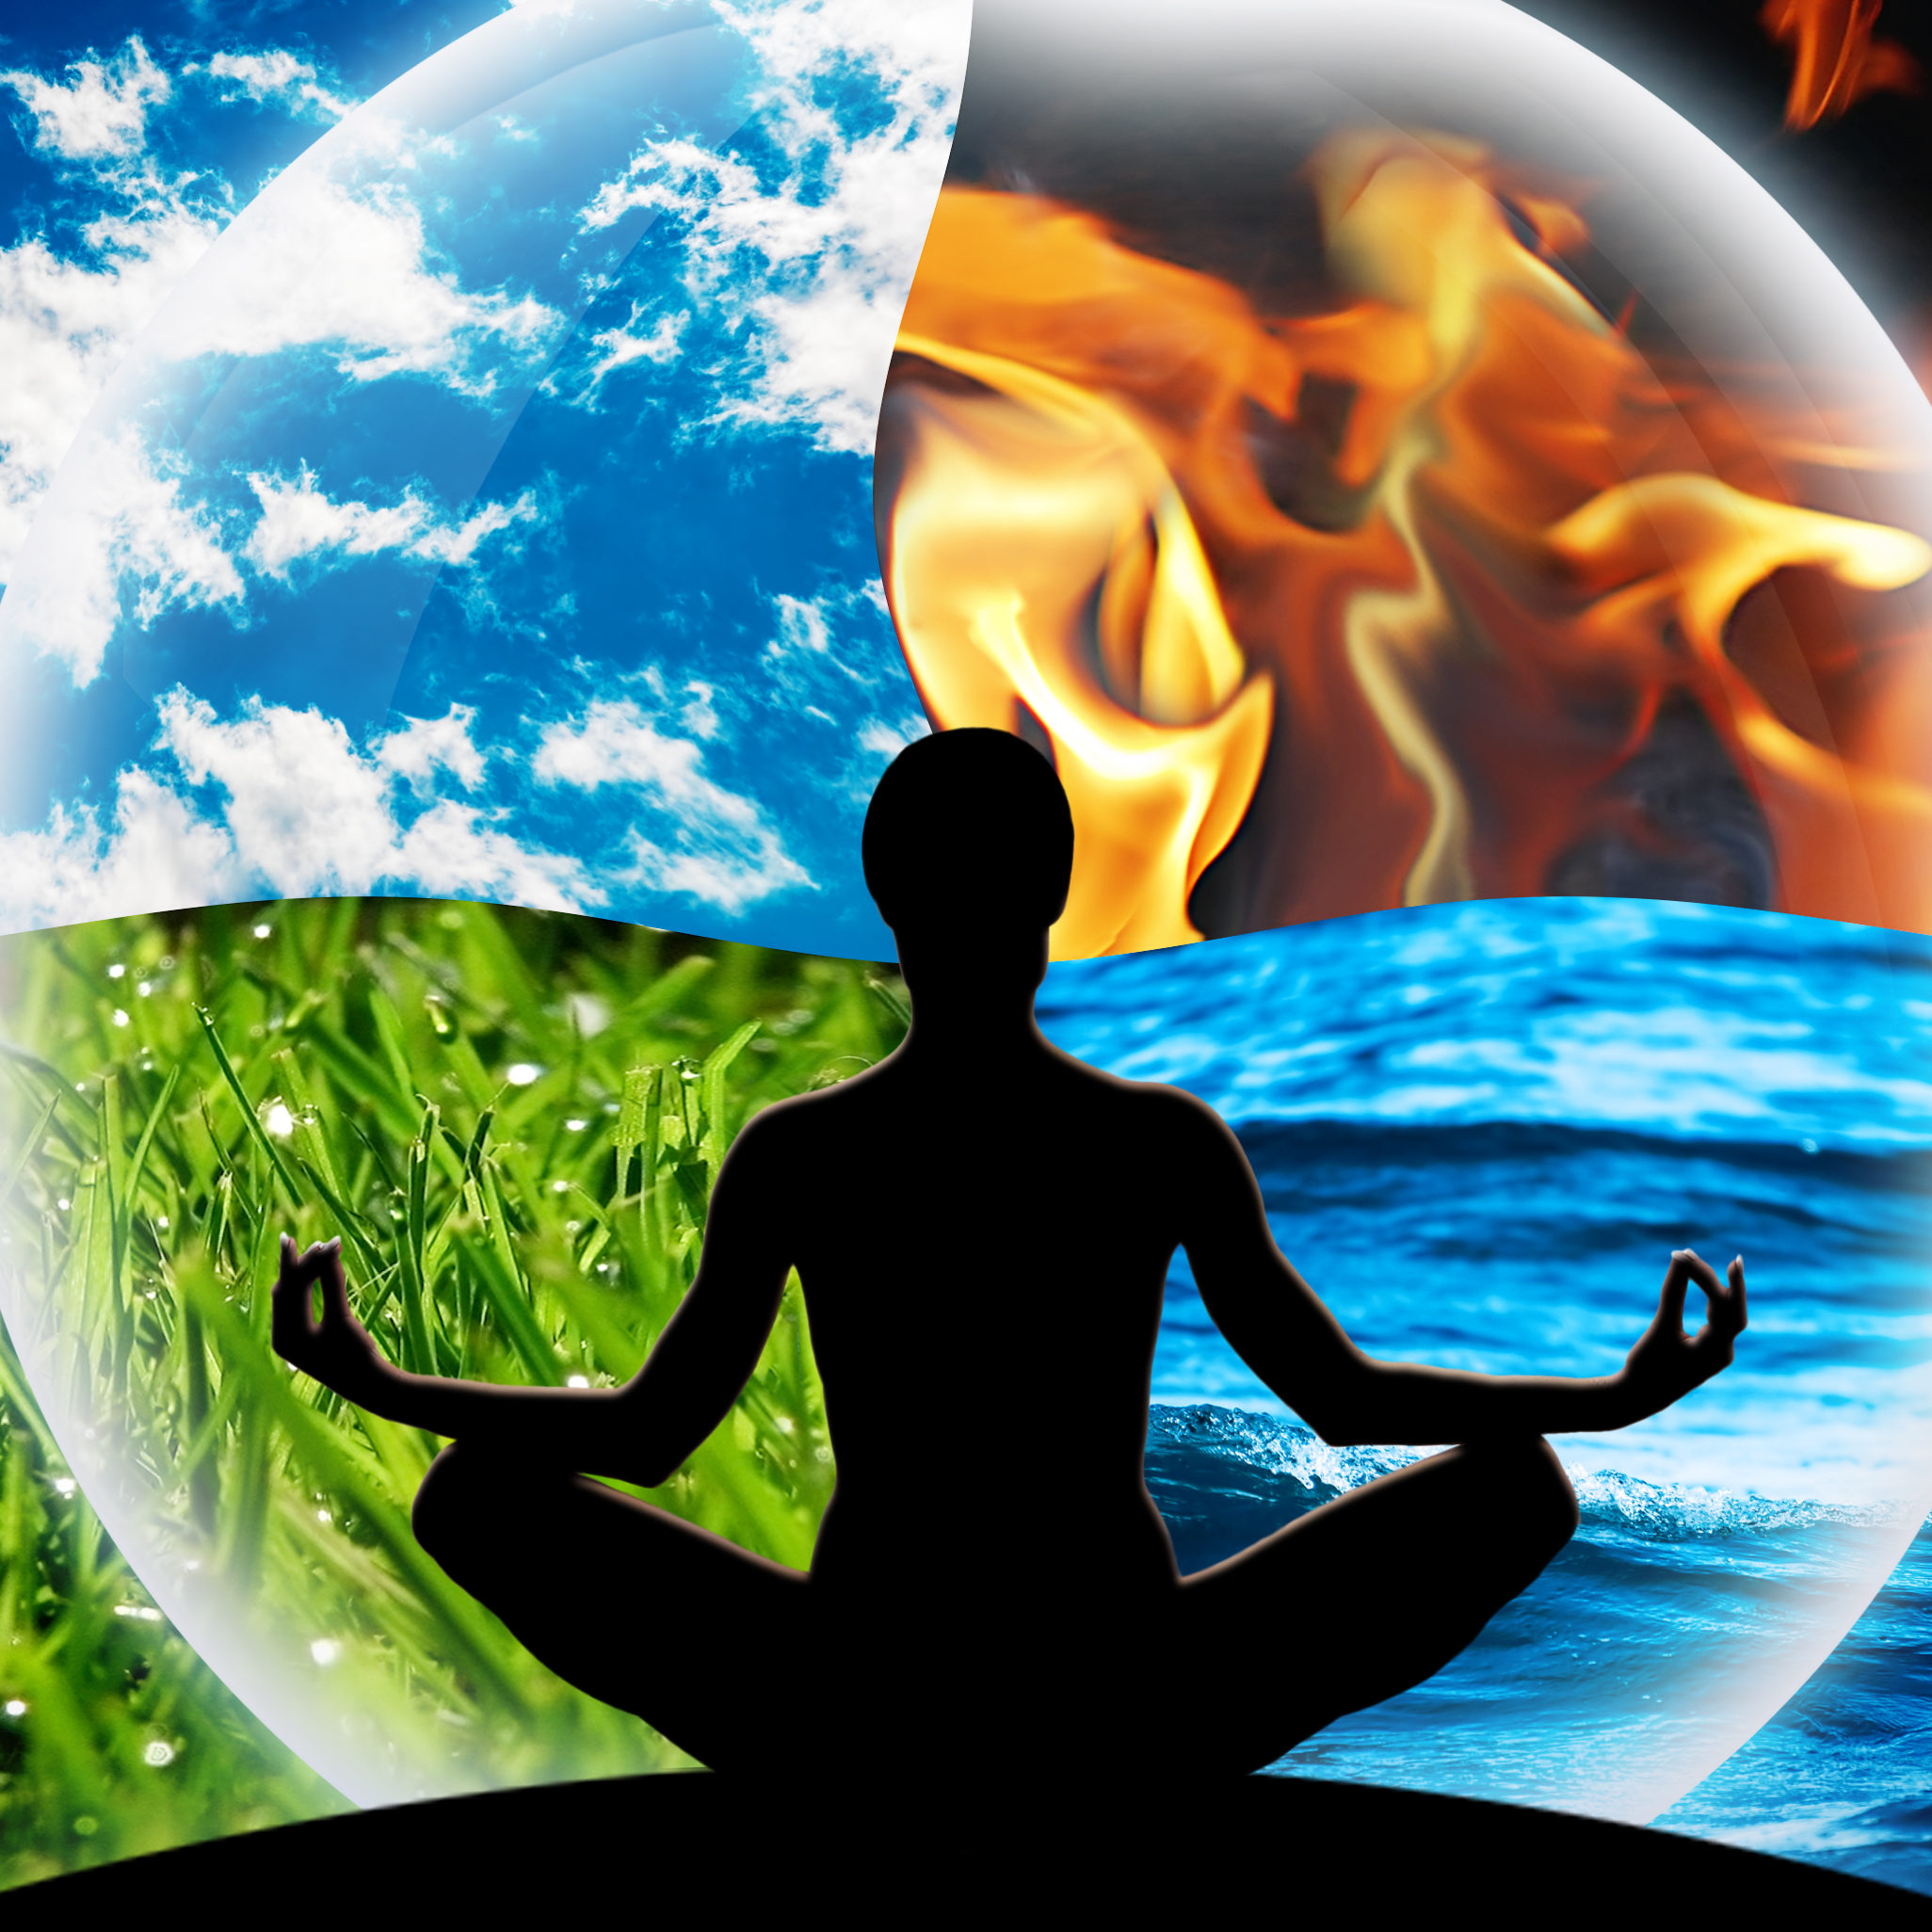 Ayurveda, yoga, four natural elements (water, fire, earth, air) balance with nature.